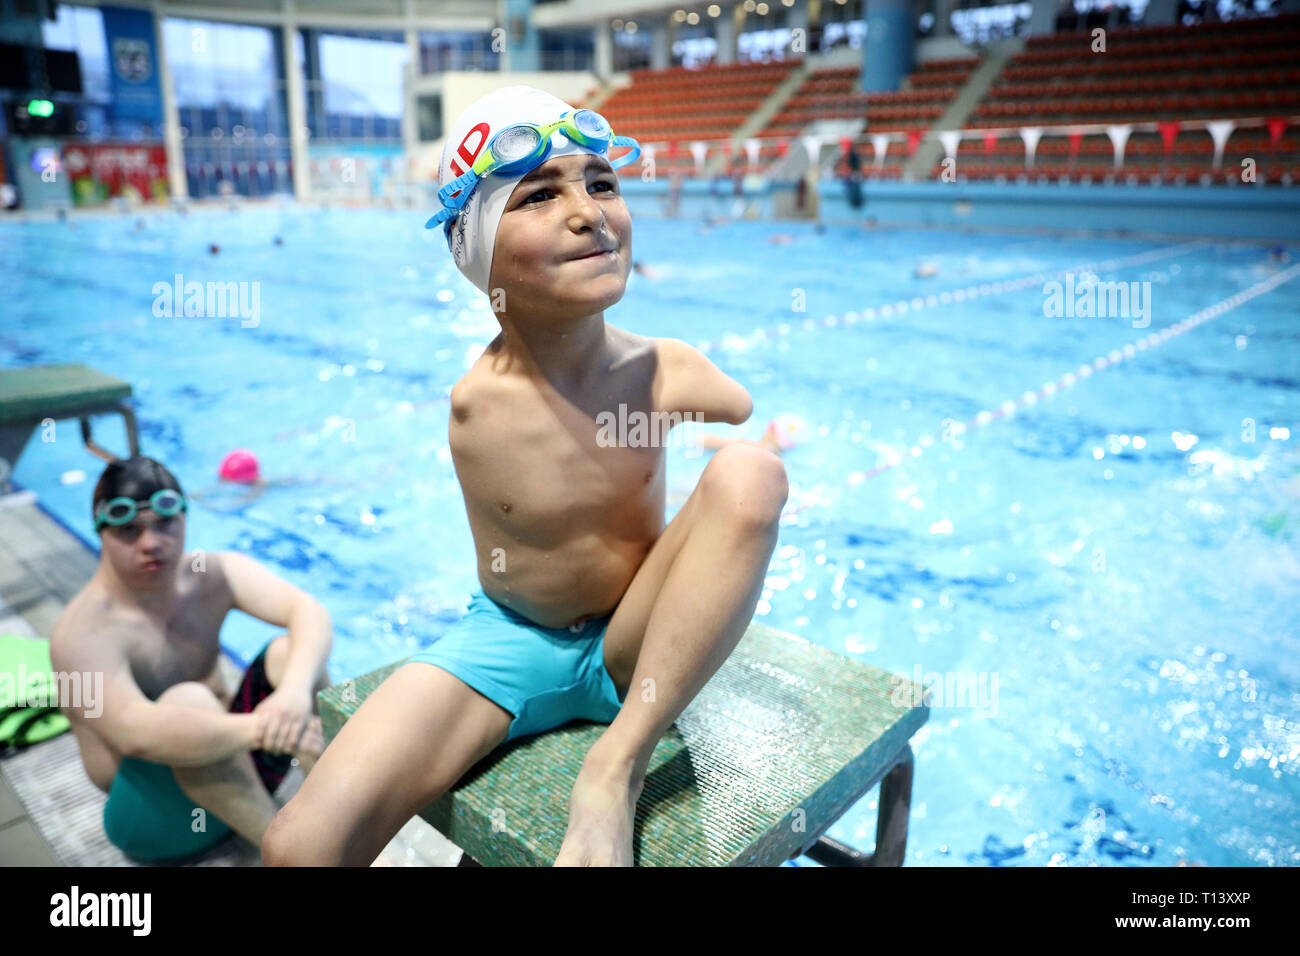 Sarajevo. 21st Mar, 2019. Photo taken on March 21, 2019 shows Ismail Zulfic (R) at the Olympic Pool Otoka in Sarajevo, Bosnia and Herzegovina (BiH). Eight-year-old Ismail Zulfic from Bosnia and Herzegovina was born without both arms, and with one deformed leg - yet his successes in the swimming pool have made him an inspiration for many. Credit: Nedim Grabovica/Xinhua/Alamy Live News - Stock Image